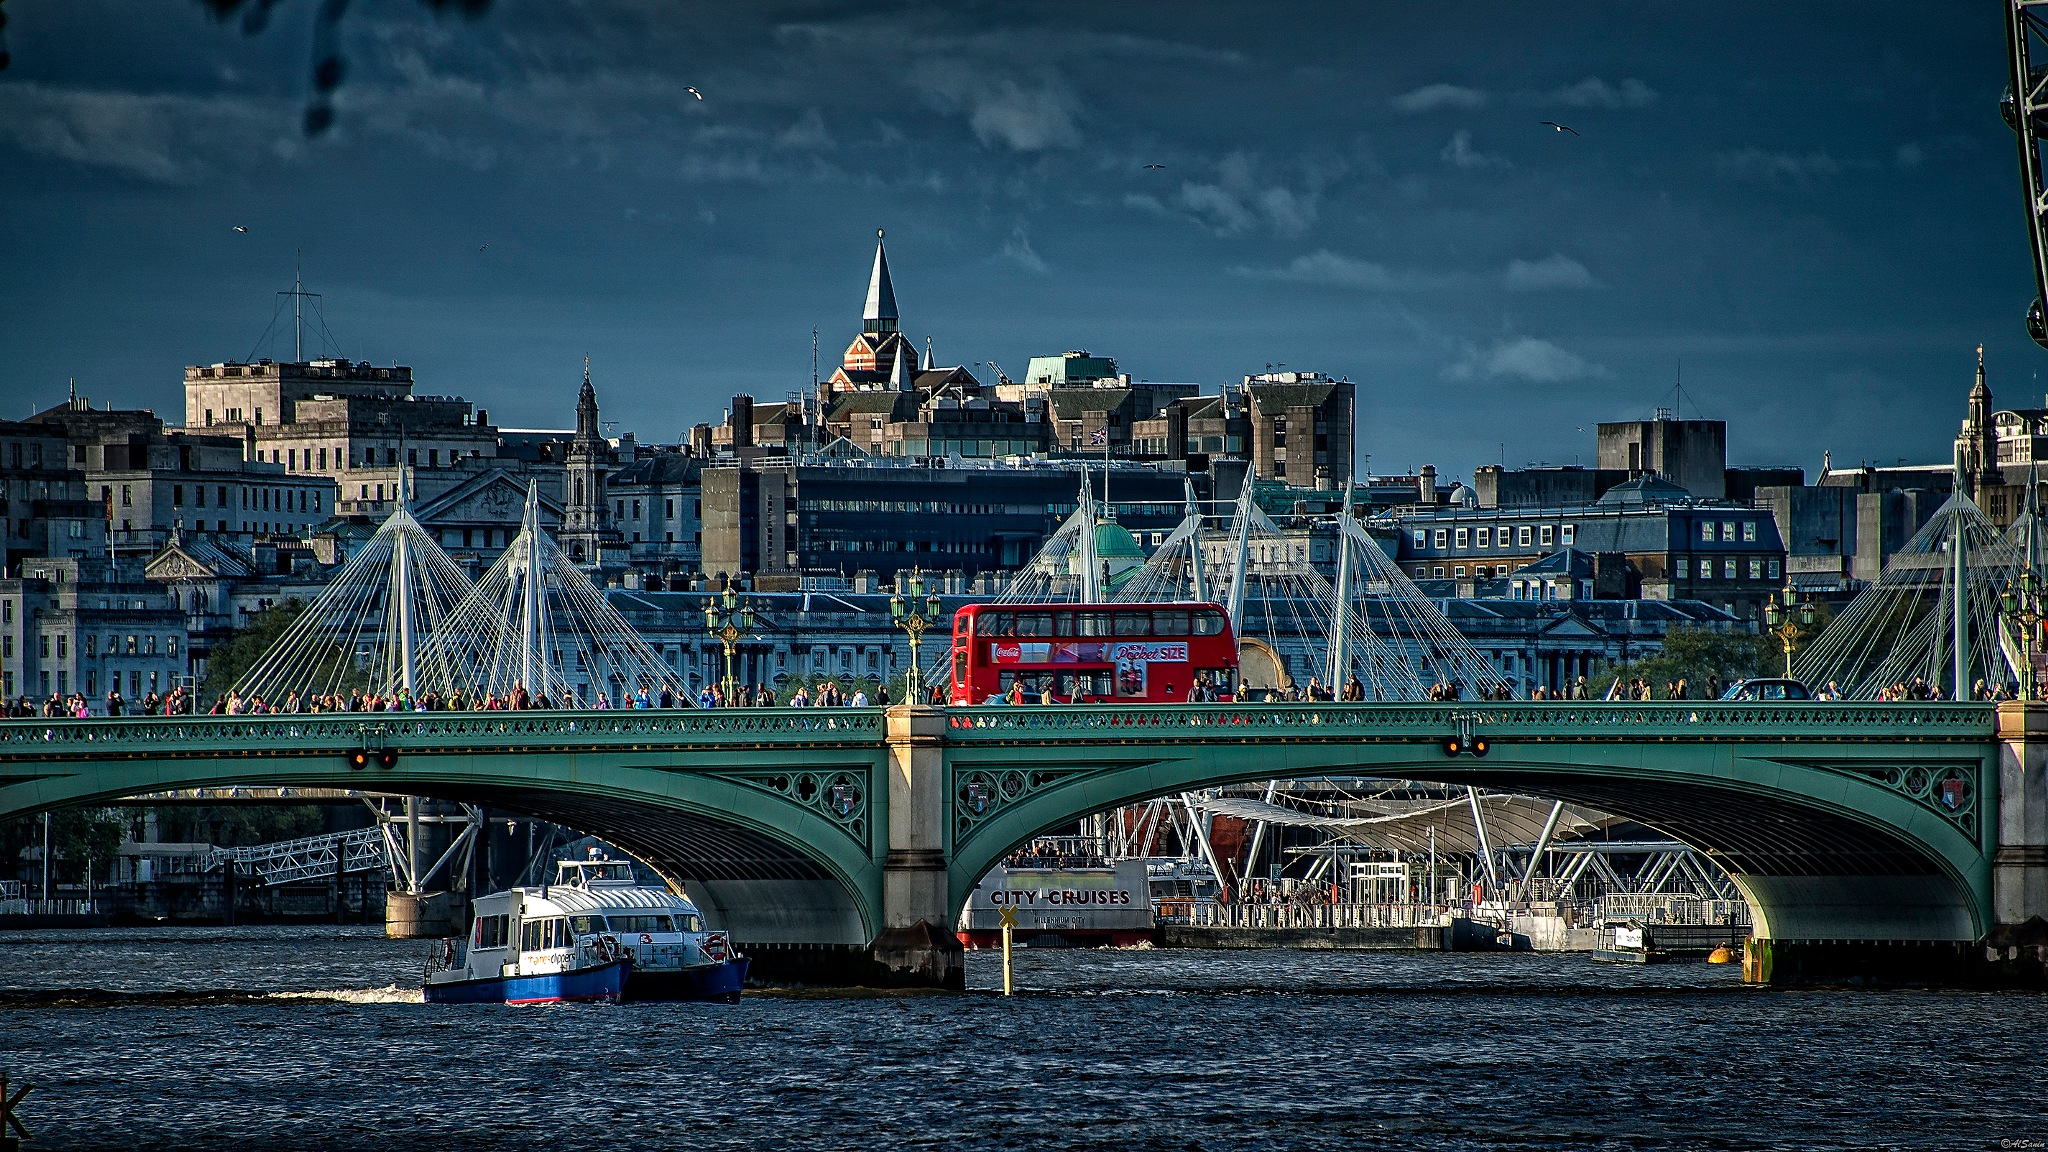 Evening light on the river Thames ... London by Al (Alexander)